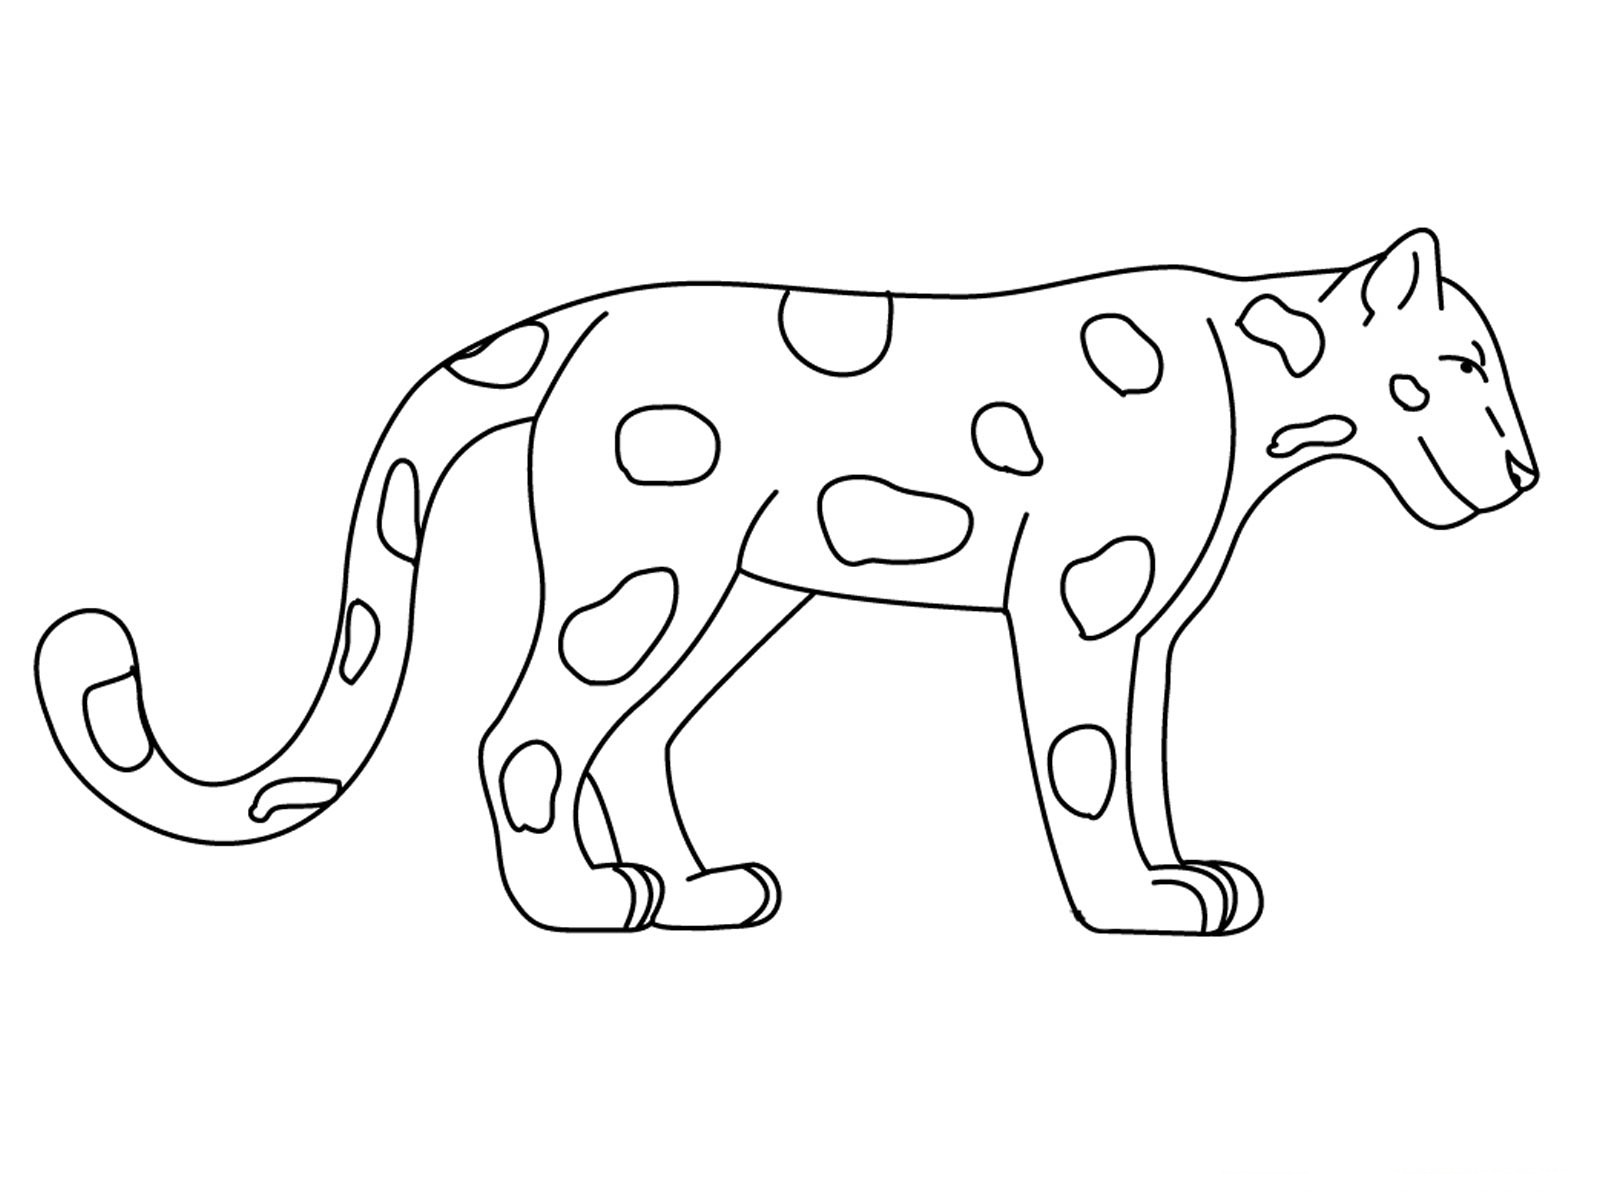 Animals Coloring Pages | Coloring Kids